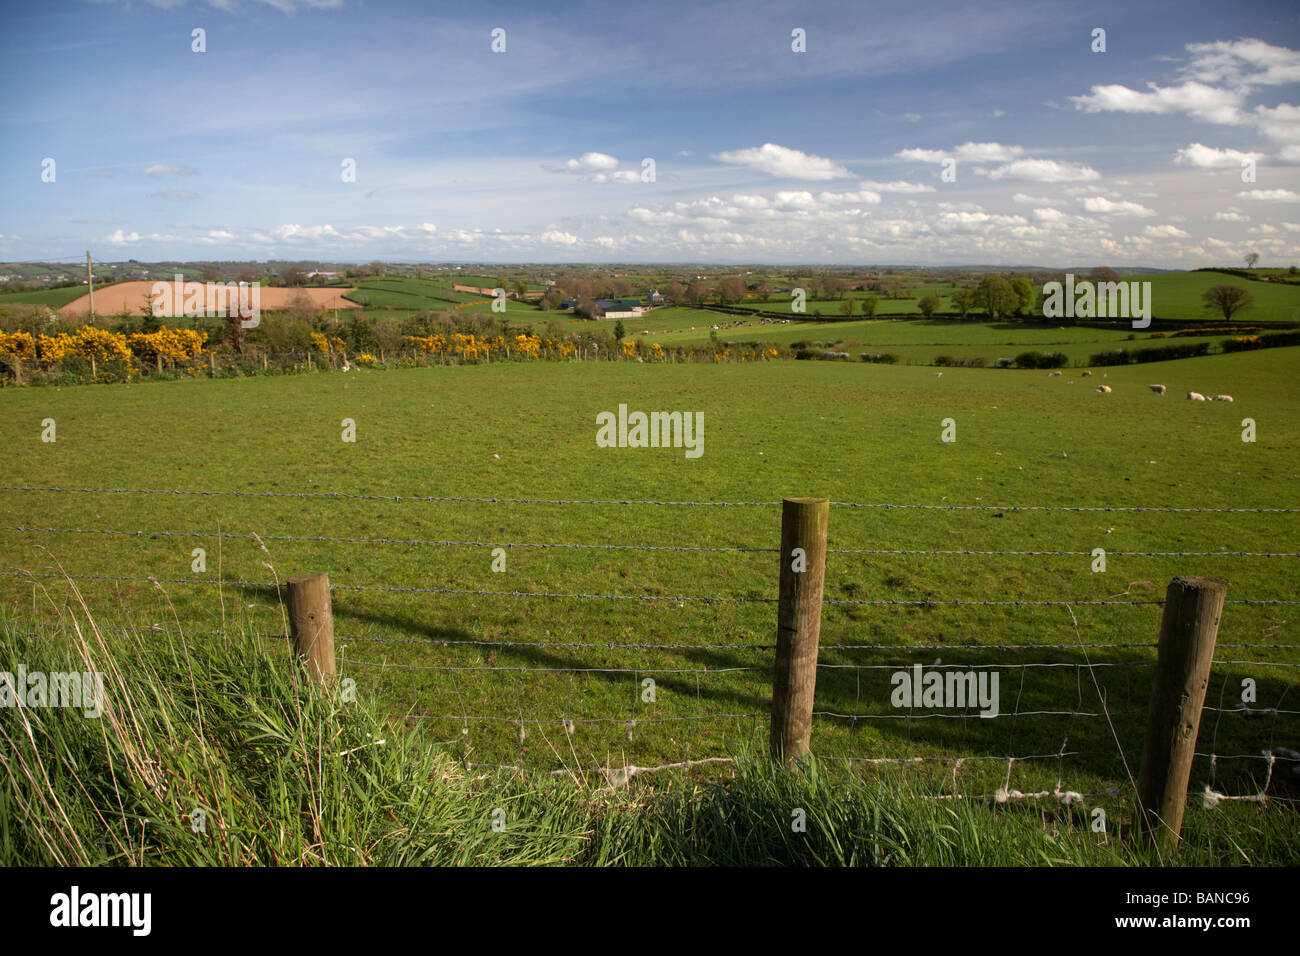 barbed wire fence in the rural countryside of county tyrone northern ireland uk - Stock Image